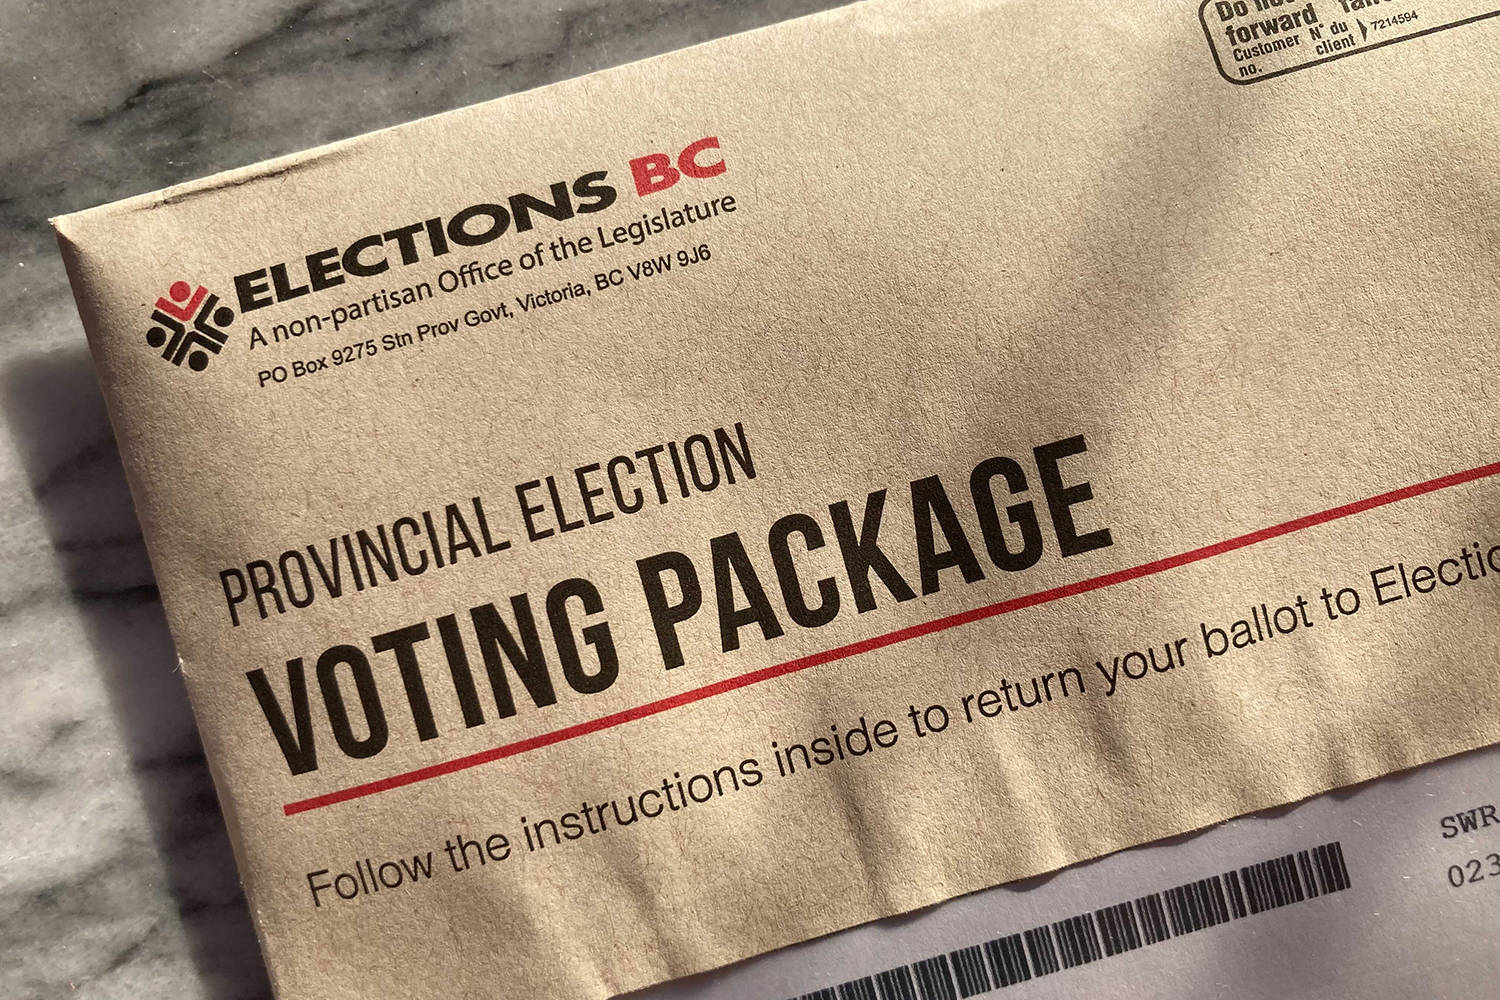 Elections BC has sent out almost 700,000 mail voting packages as of Oct. 14 with just under 3.5 million registered voters. (Black Press Media File)